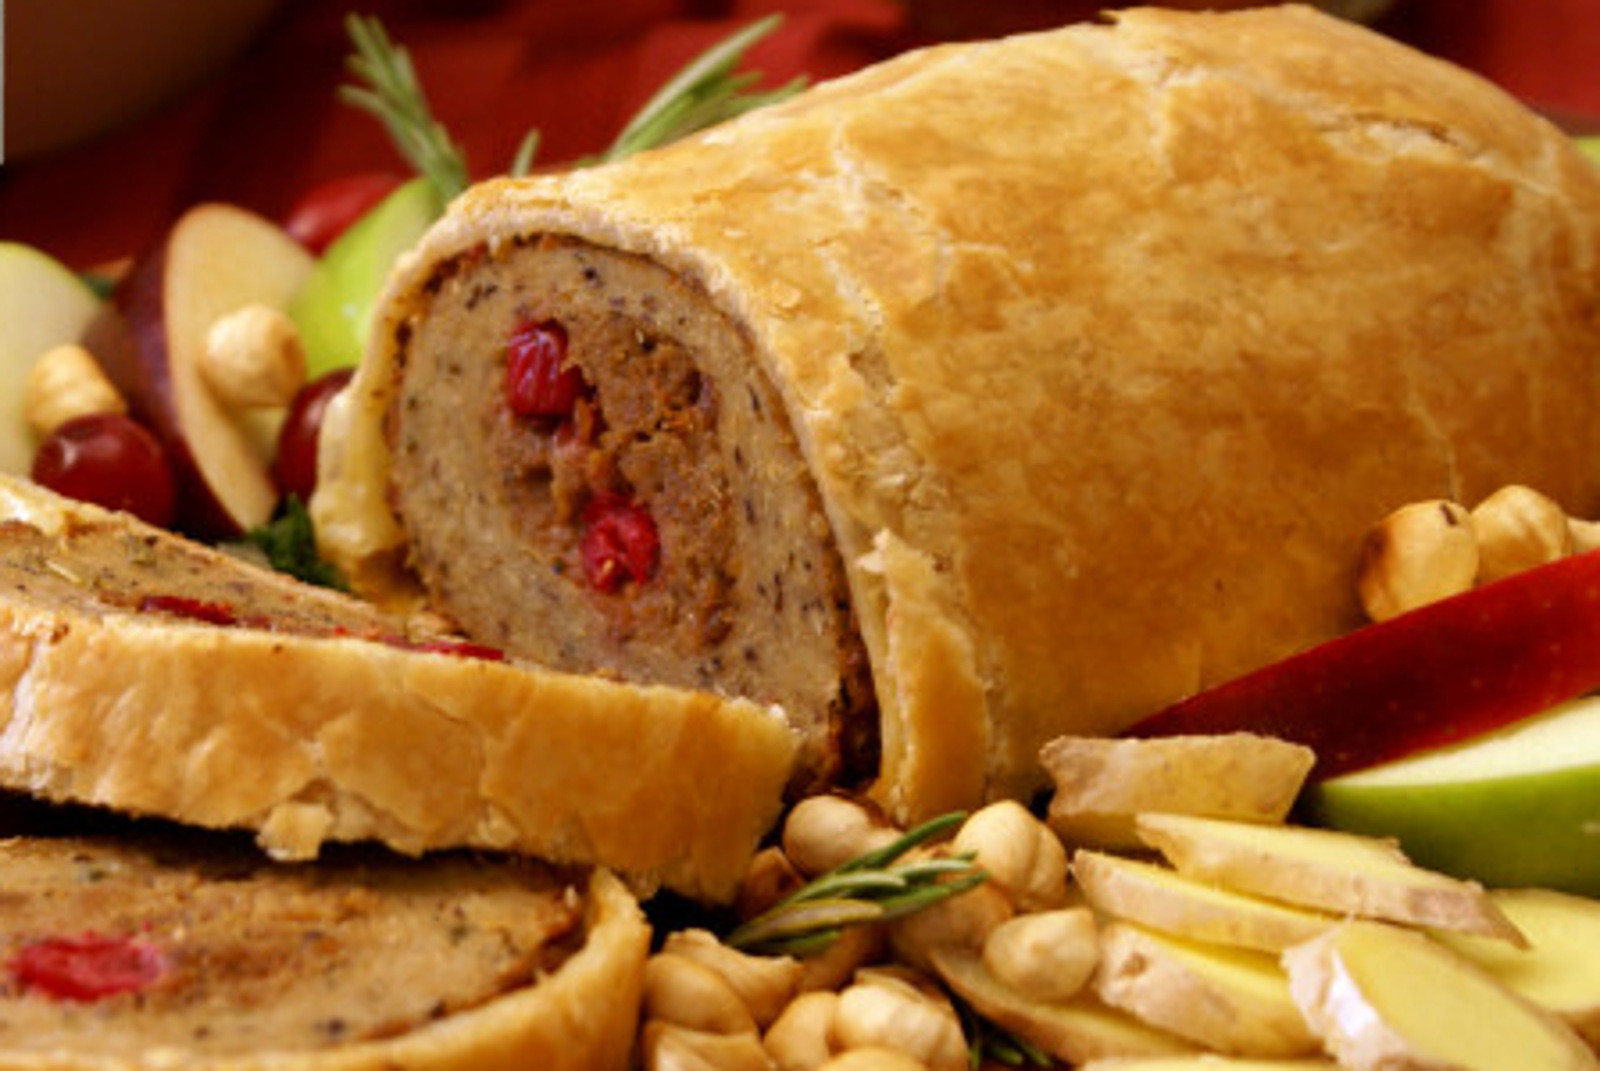 Alternatives To Turkey For Thanksgiving  The Best Meatless Turkey Alternatives for Thanksgiving